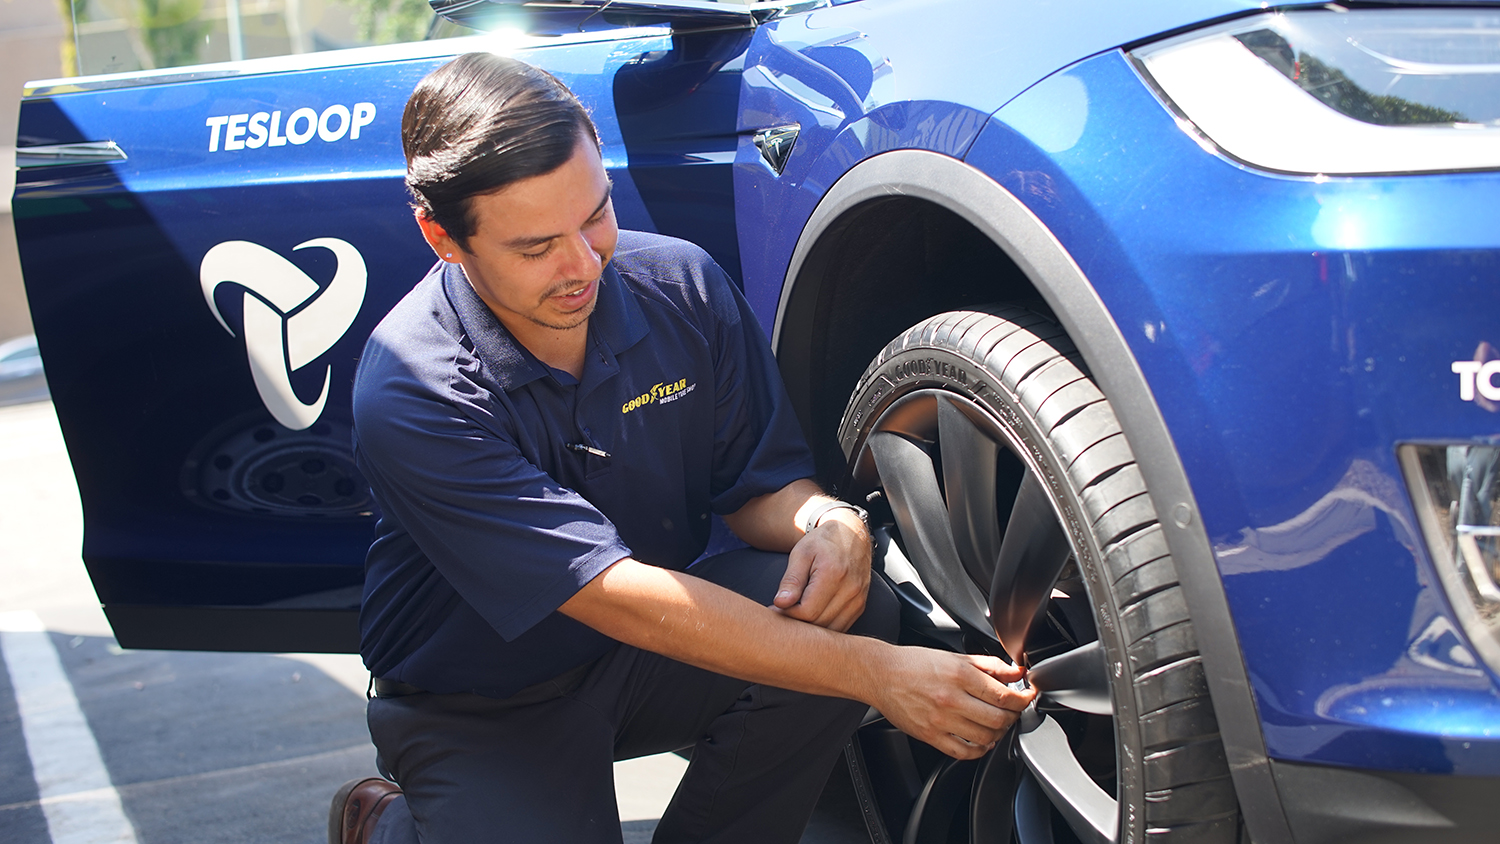 Goodyear will be providing tire maintenance and repair while Tesloop vehicles are at charging stations